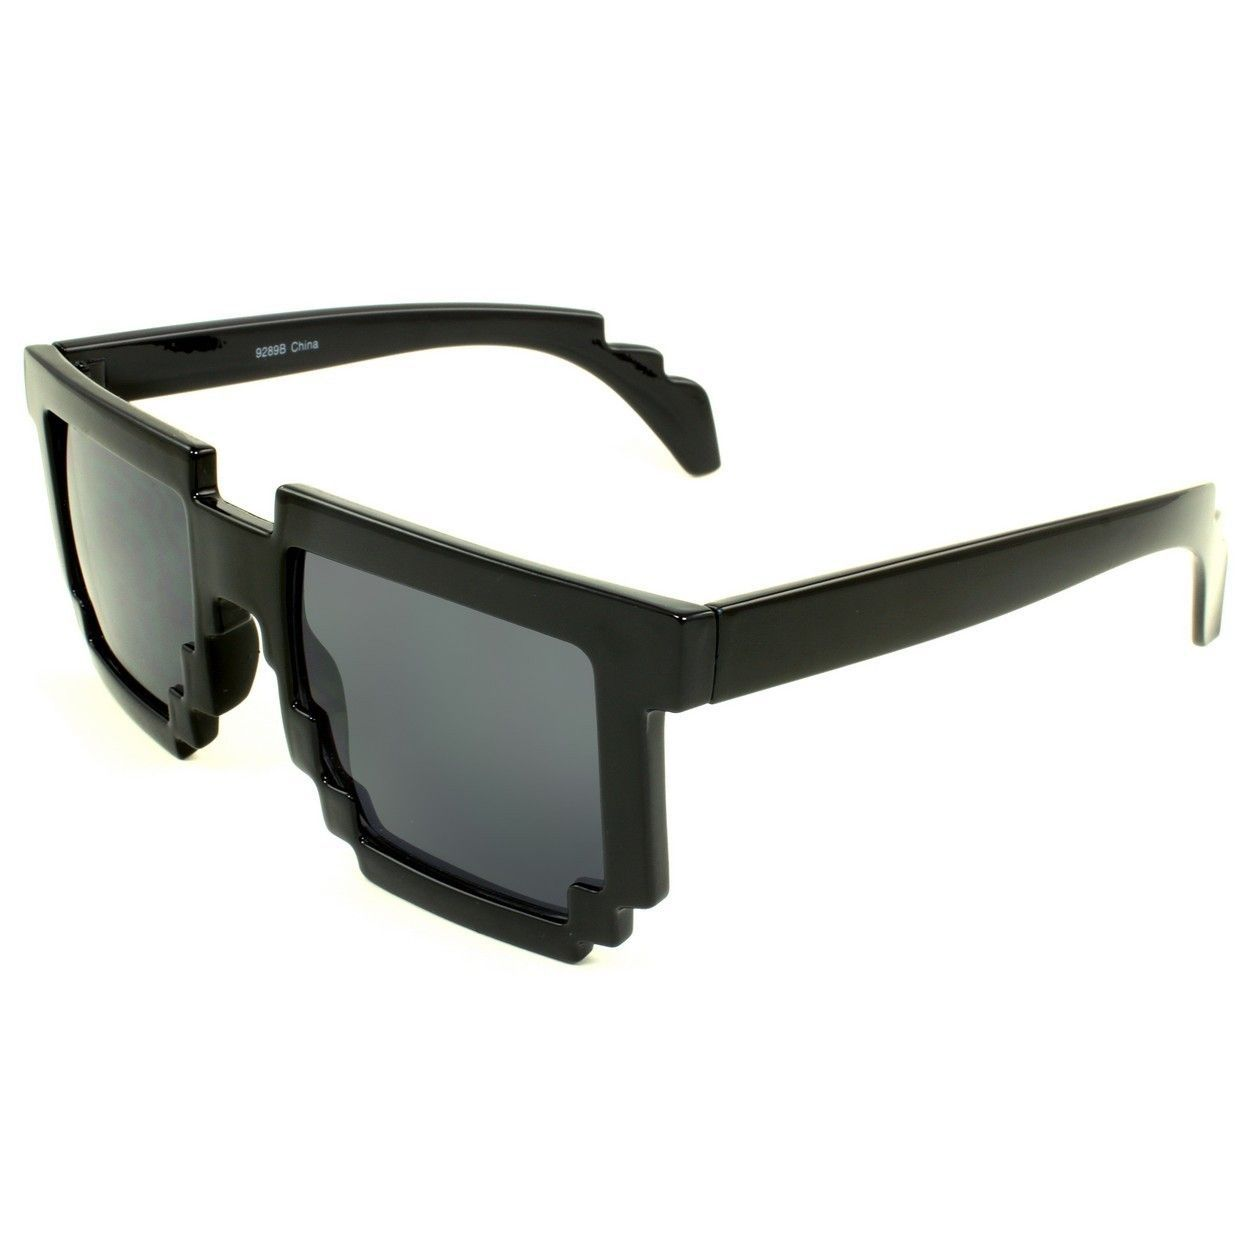 Add edgy, geek-chic style to your look with these fun zig-zag frame sunglasses that give a pixelated look. The sunglasses feature UV400 lens technology, absorbing over 99-percent of harmful UVA and UVB spectrums.